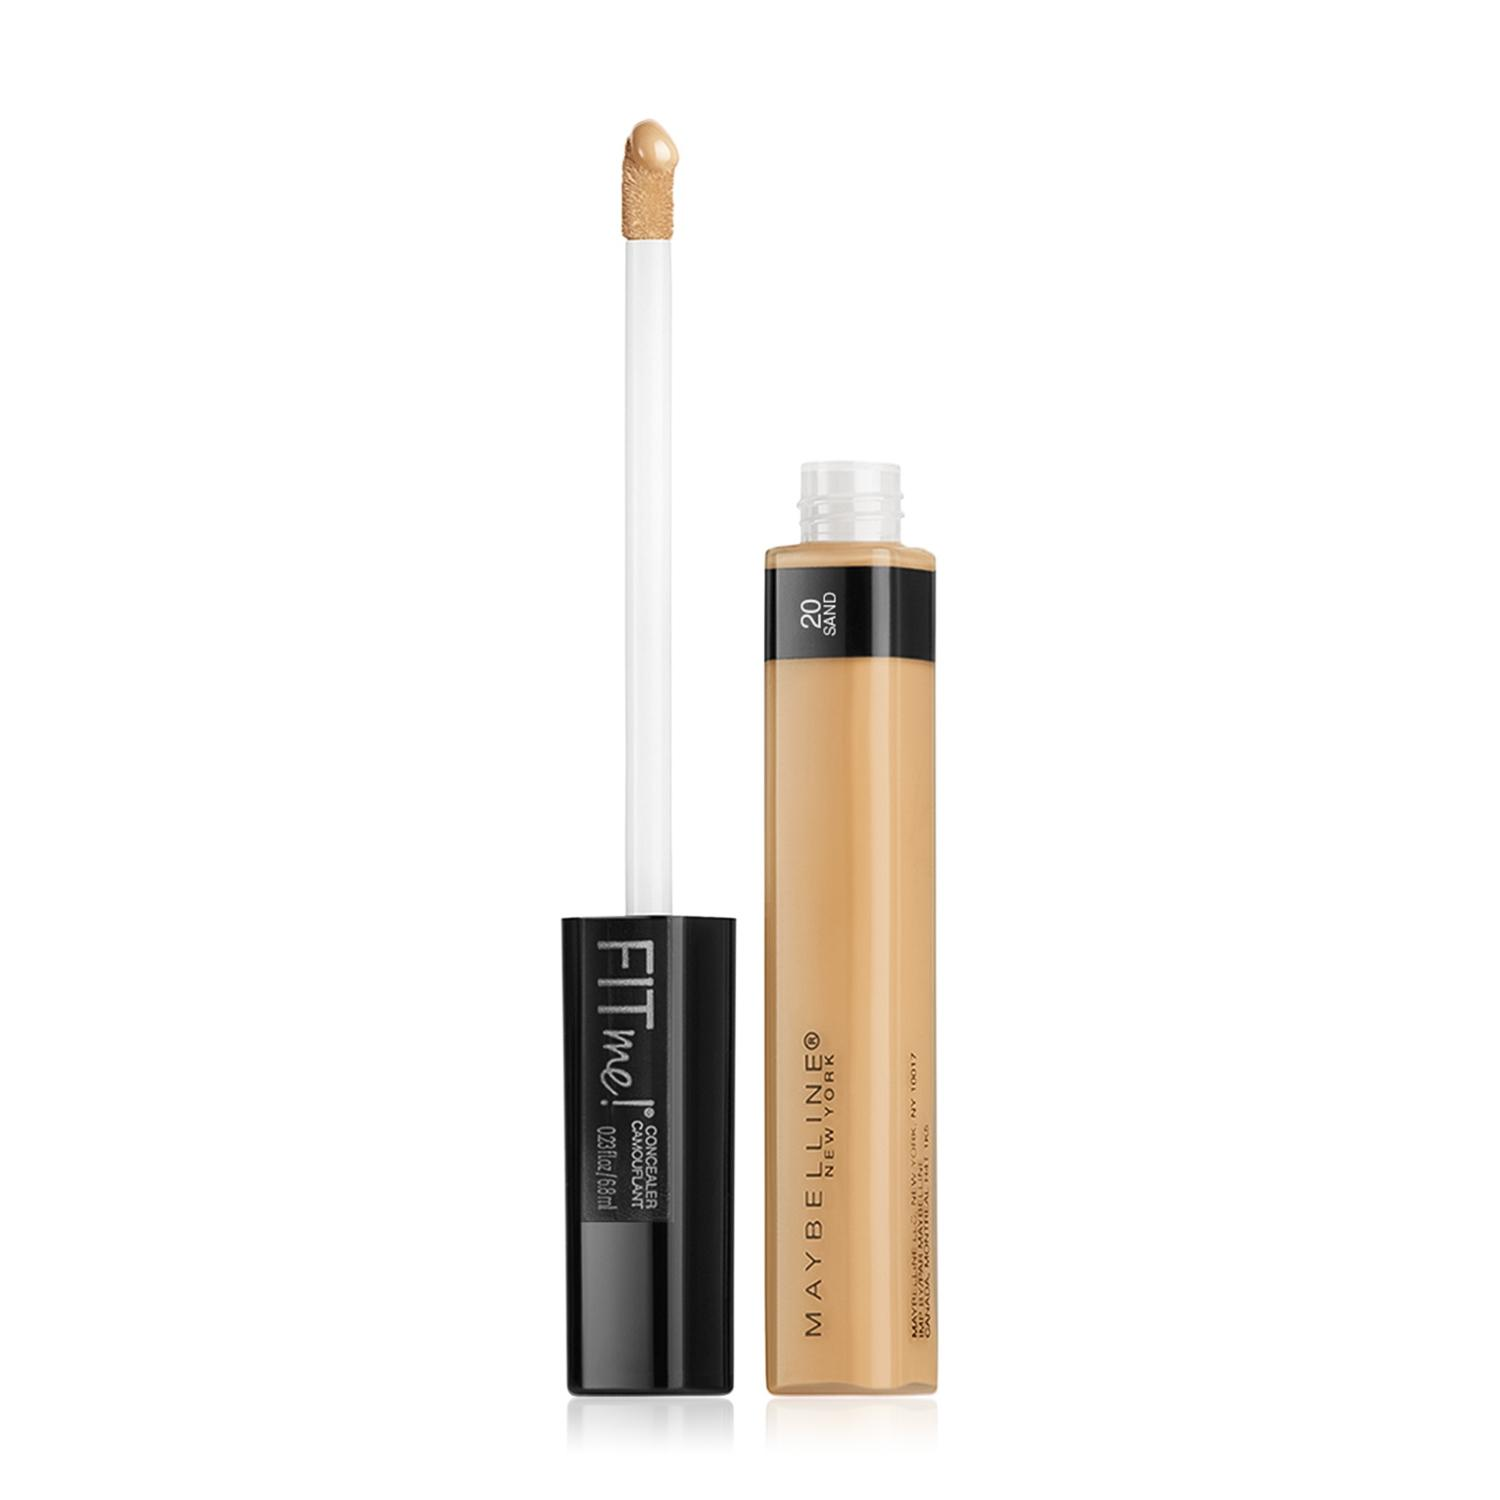 Maybelline Fit Me Flawless Natural Concealer - 20 Sand Philippines